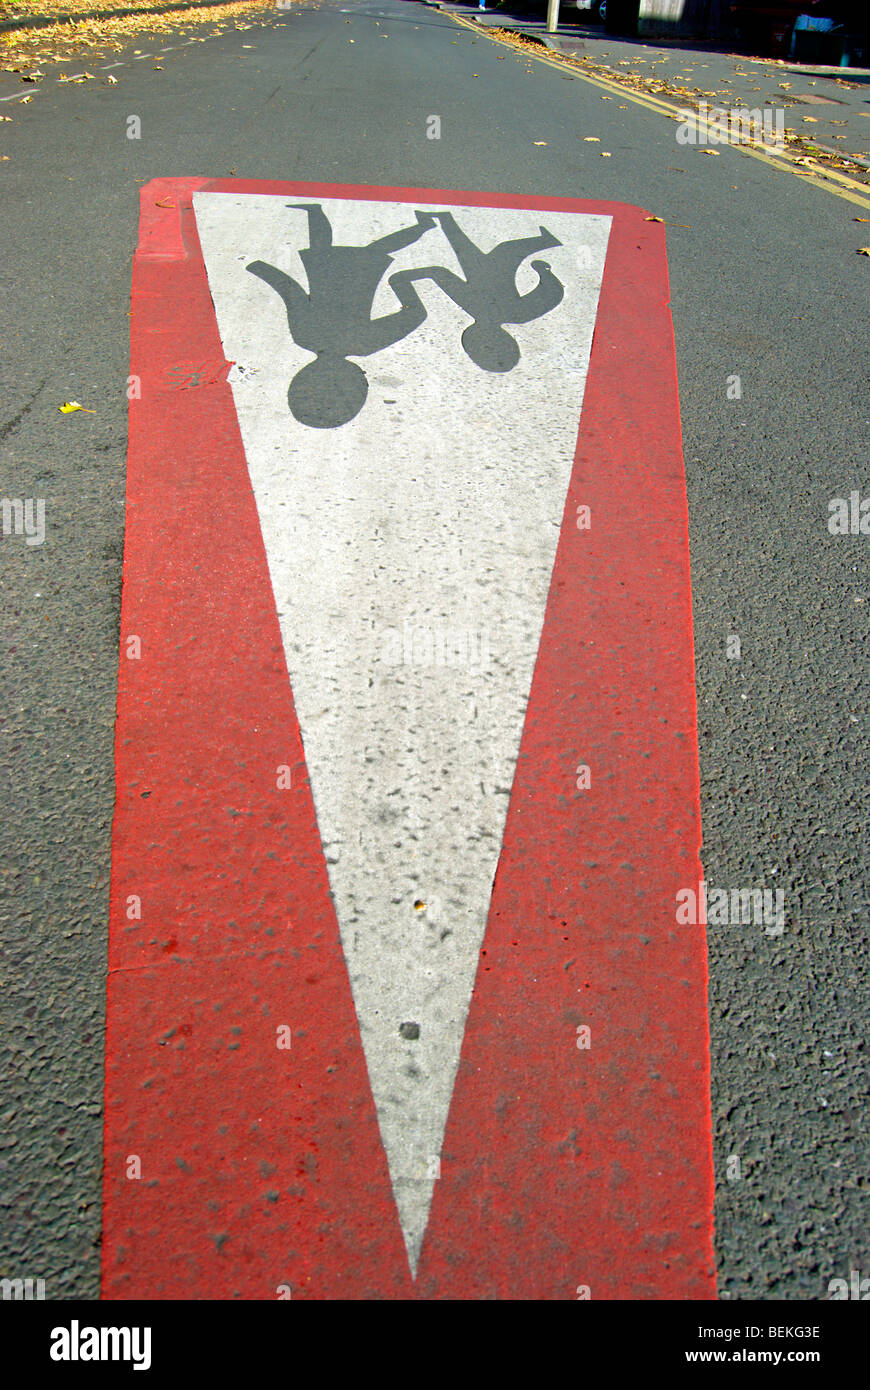 seen from an unusual angle, a british road marking indicating a place where children are likely to be crossing the - Stock Image